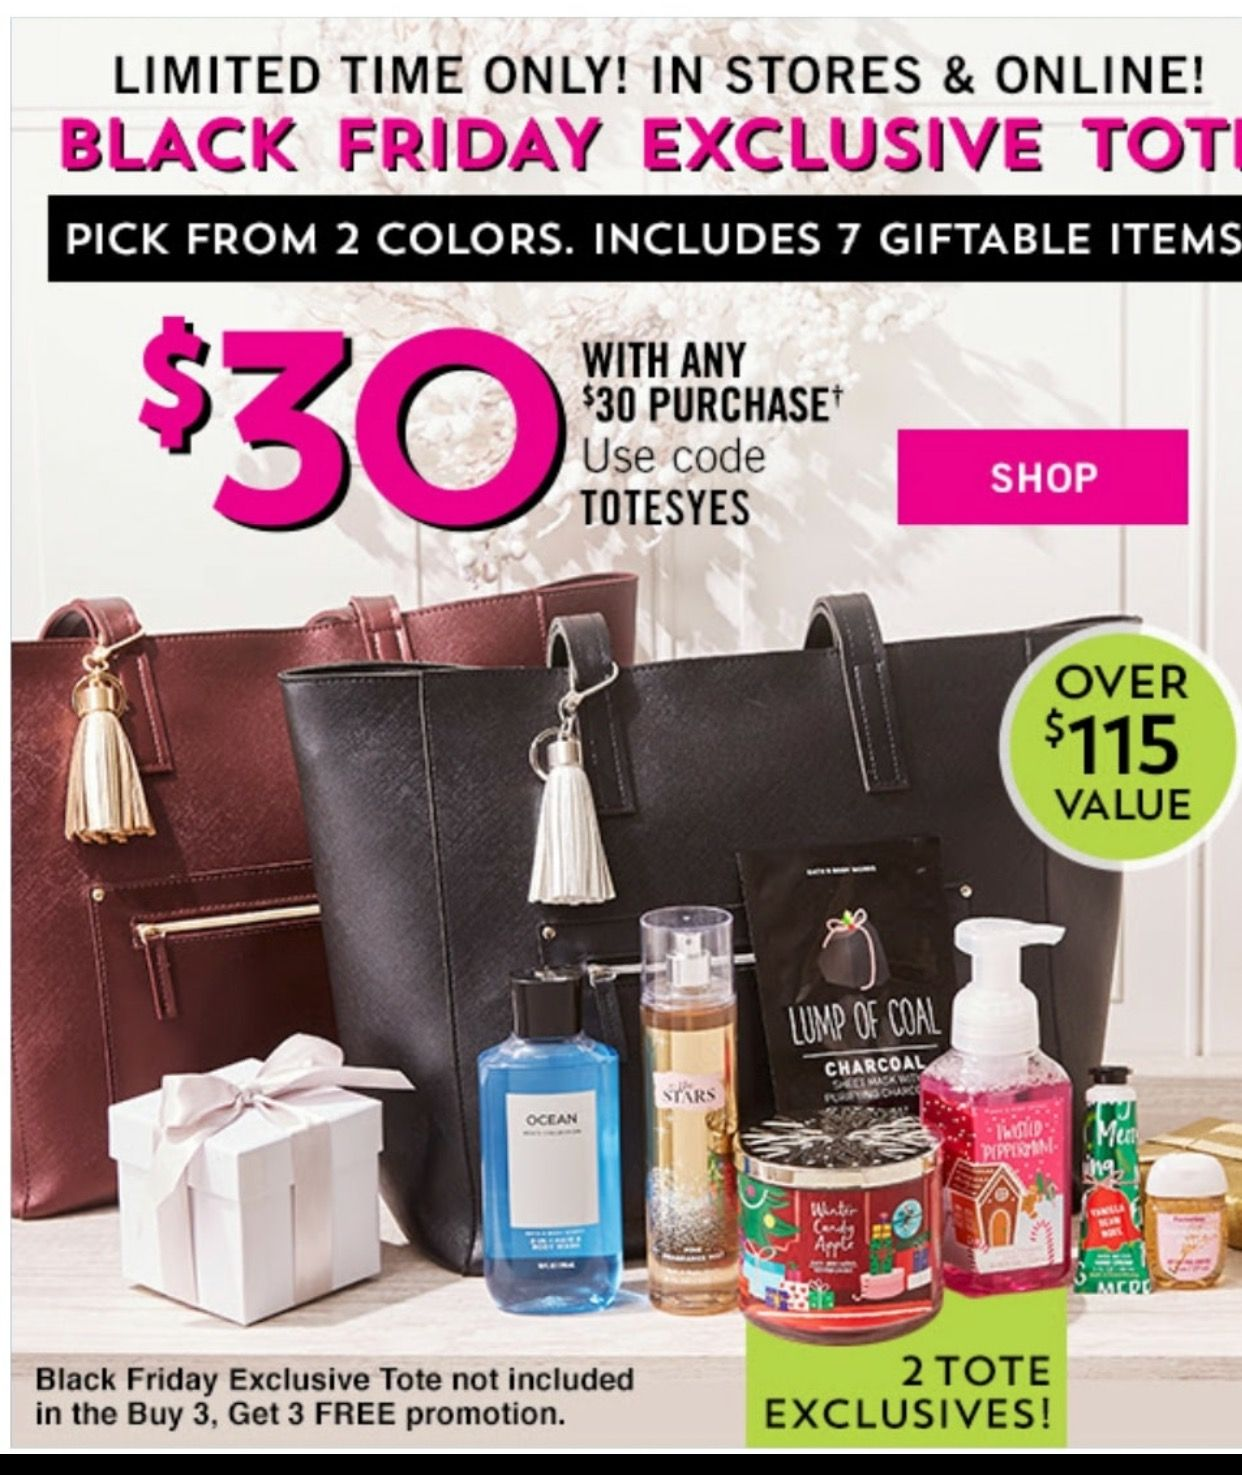 Elf Cyber Monday 2019 Sale Live Avail Maximum Discounts Offers On Elf Cosmetics Jcpenney Black Friday Black Friday Fashion Black Friday Offers